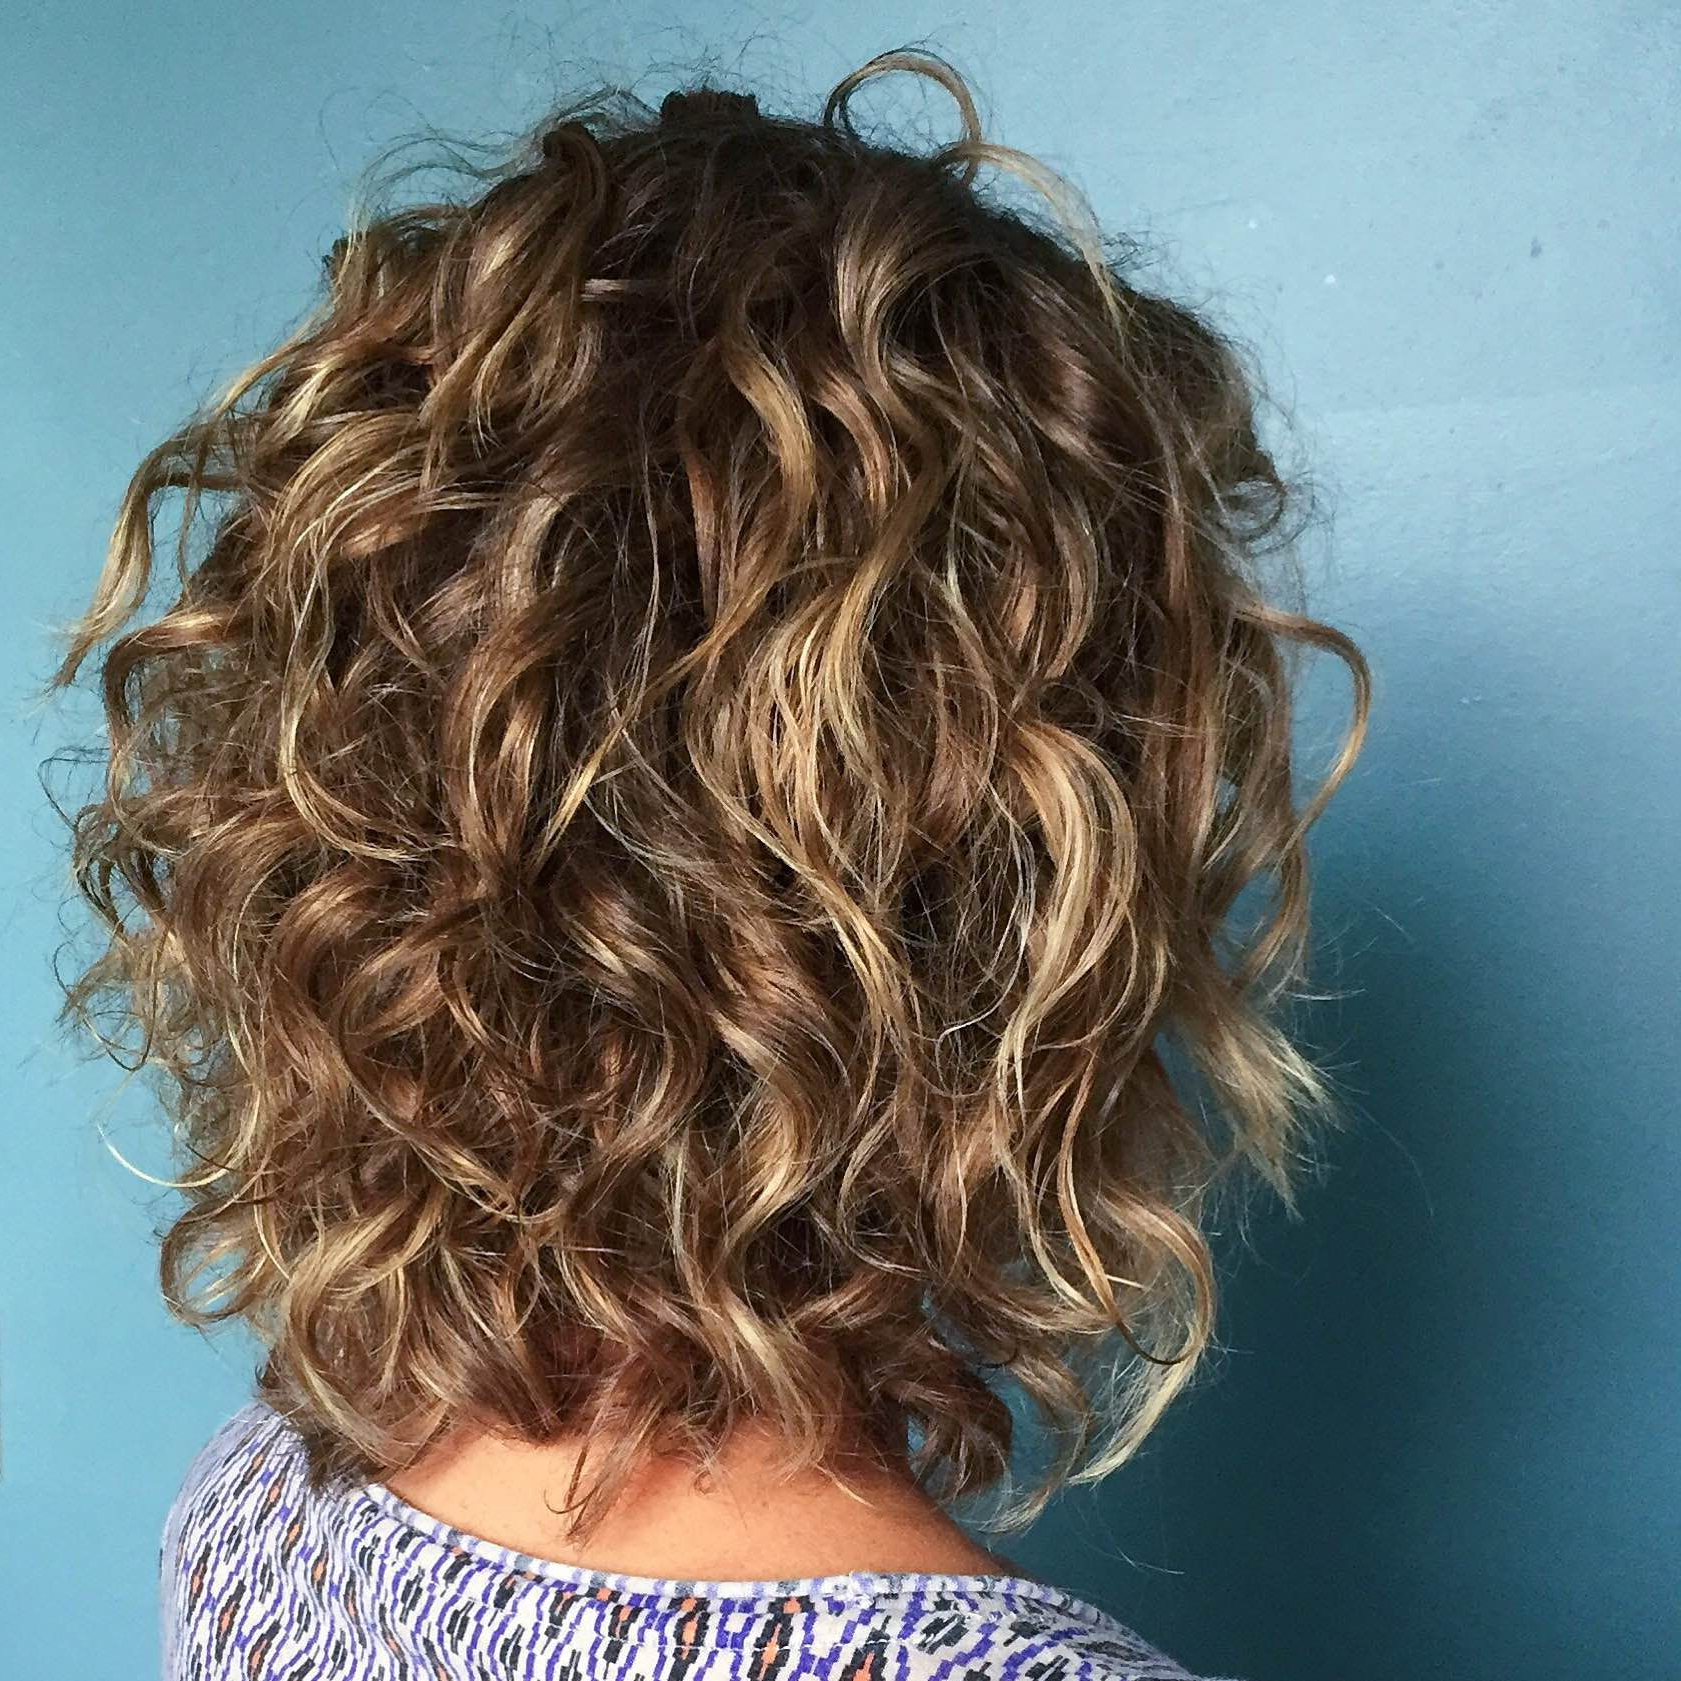 54 Nice Cute Curly Hairstyles For Medium Hair 2017 | Curly Hair Pertaining To Golden Brown Thick Curly Bob Hairstyles (View 5 of 25)